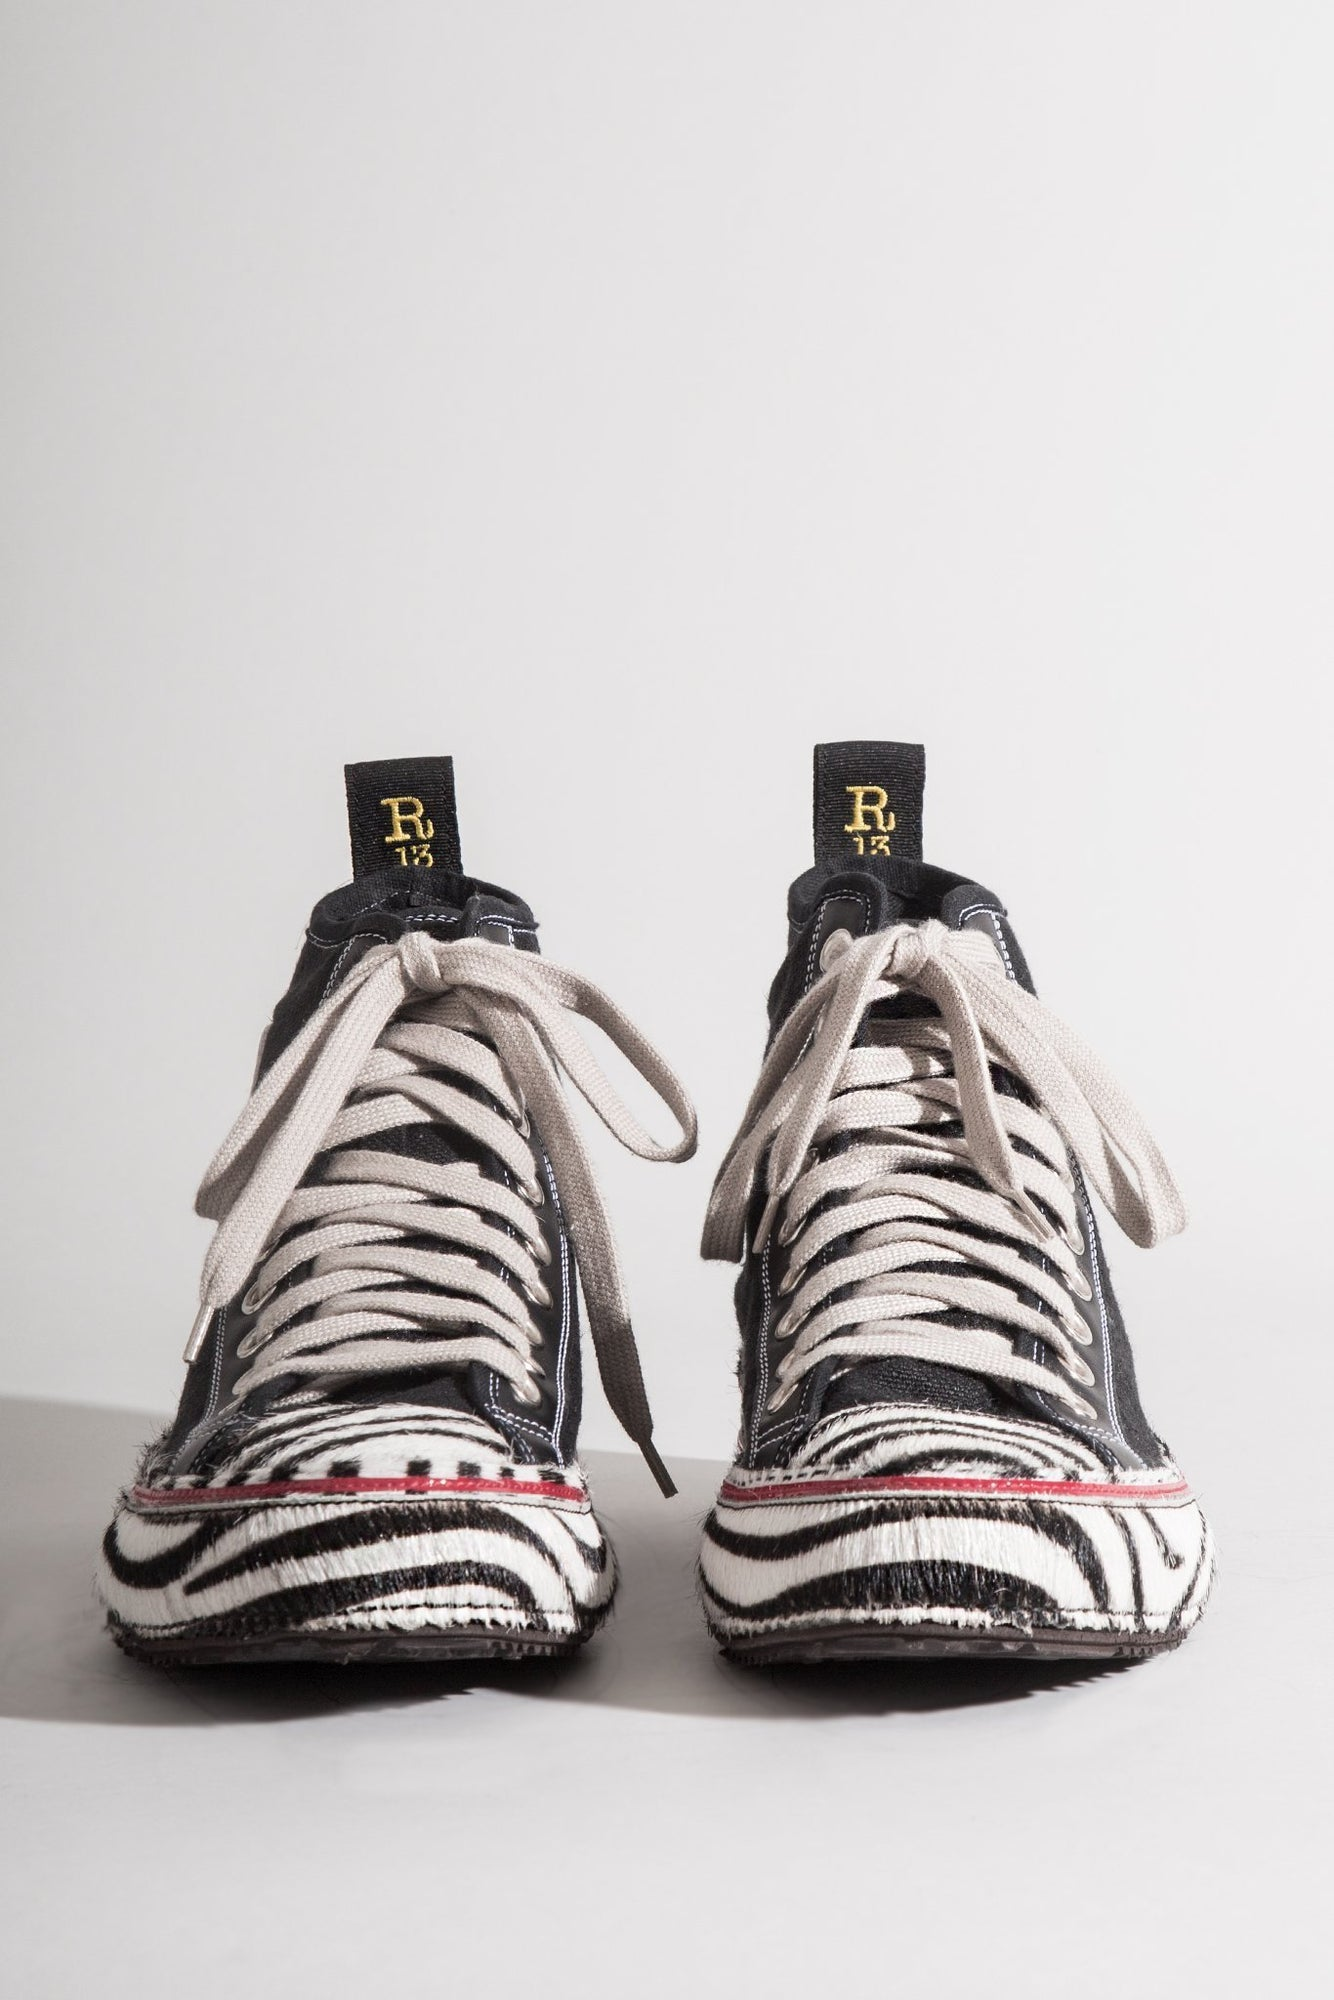 R13 High Top w/ Zebra Stripe